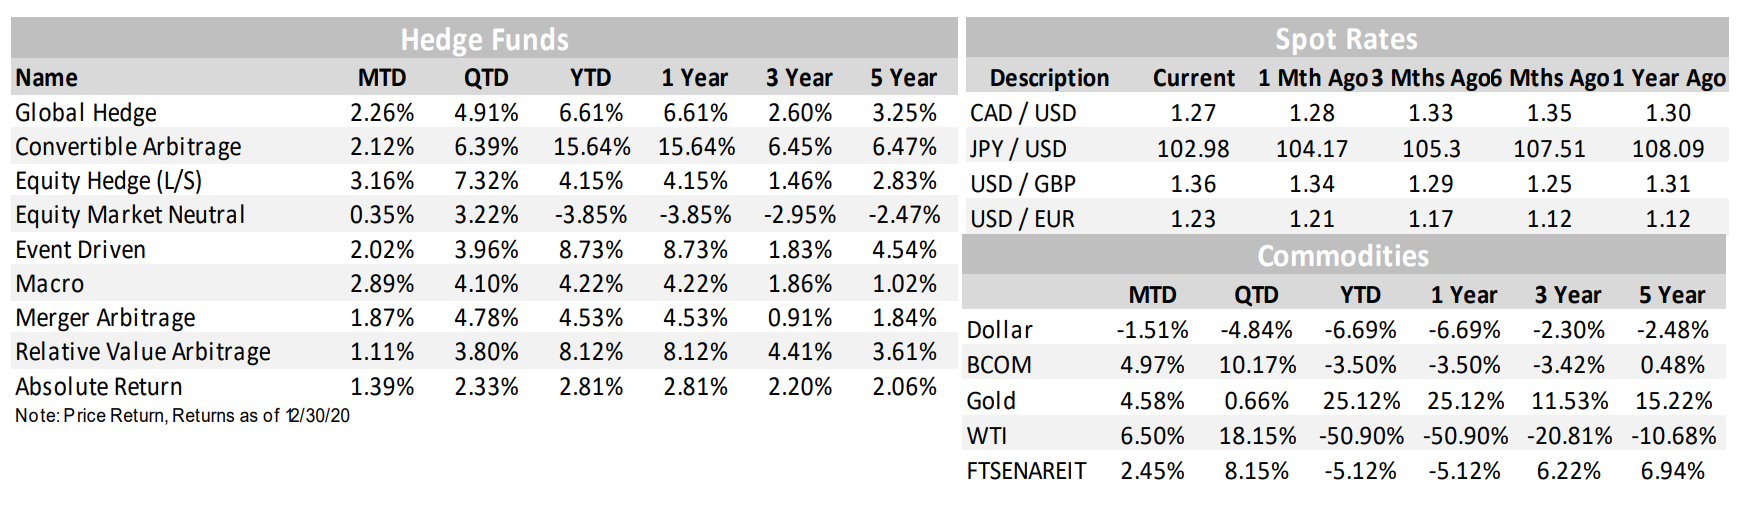 Hedge Funds Spot Rates Commodities